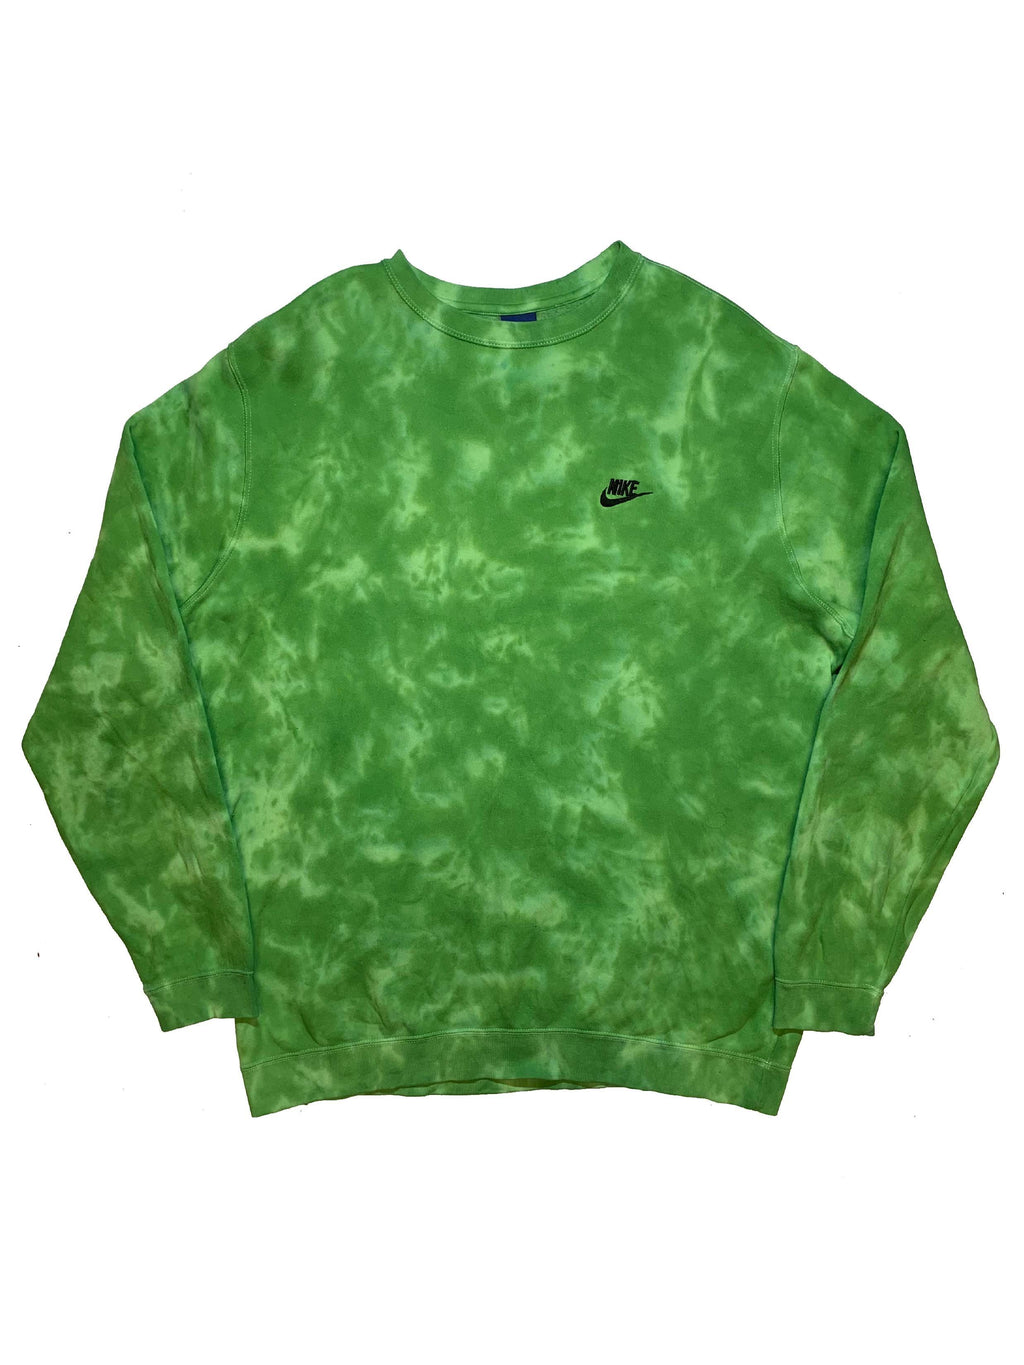 "Nike X Jeffersons Custom Tonal Tie Dye Washed Crewneck ""SLIME GREEN"""